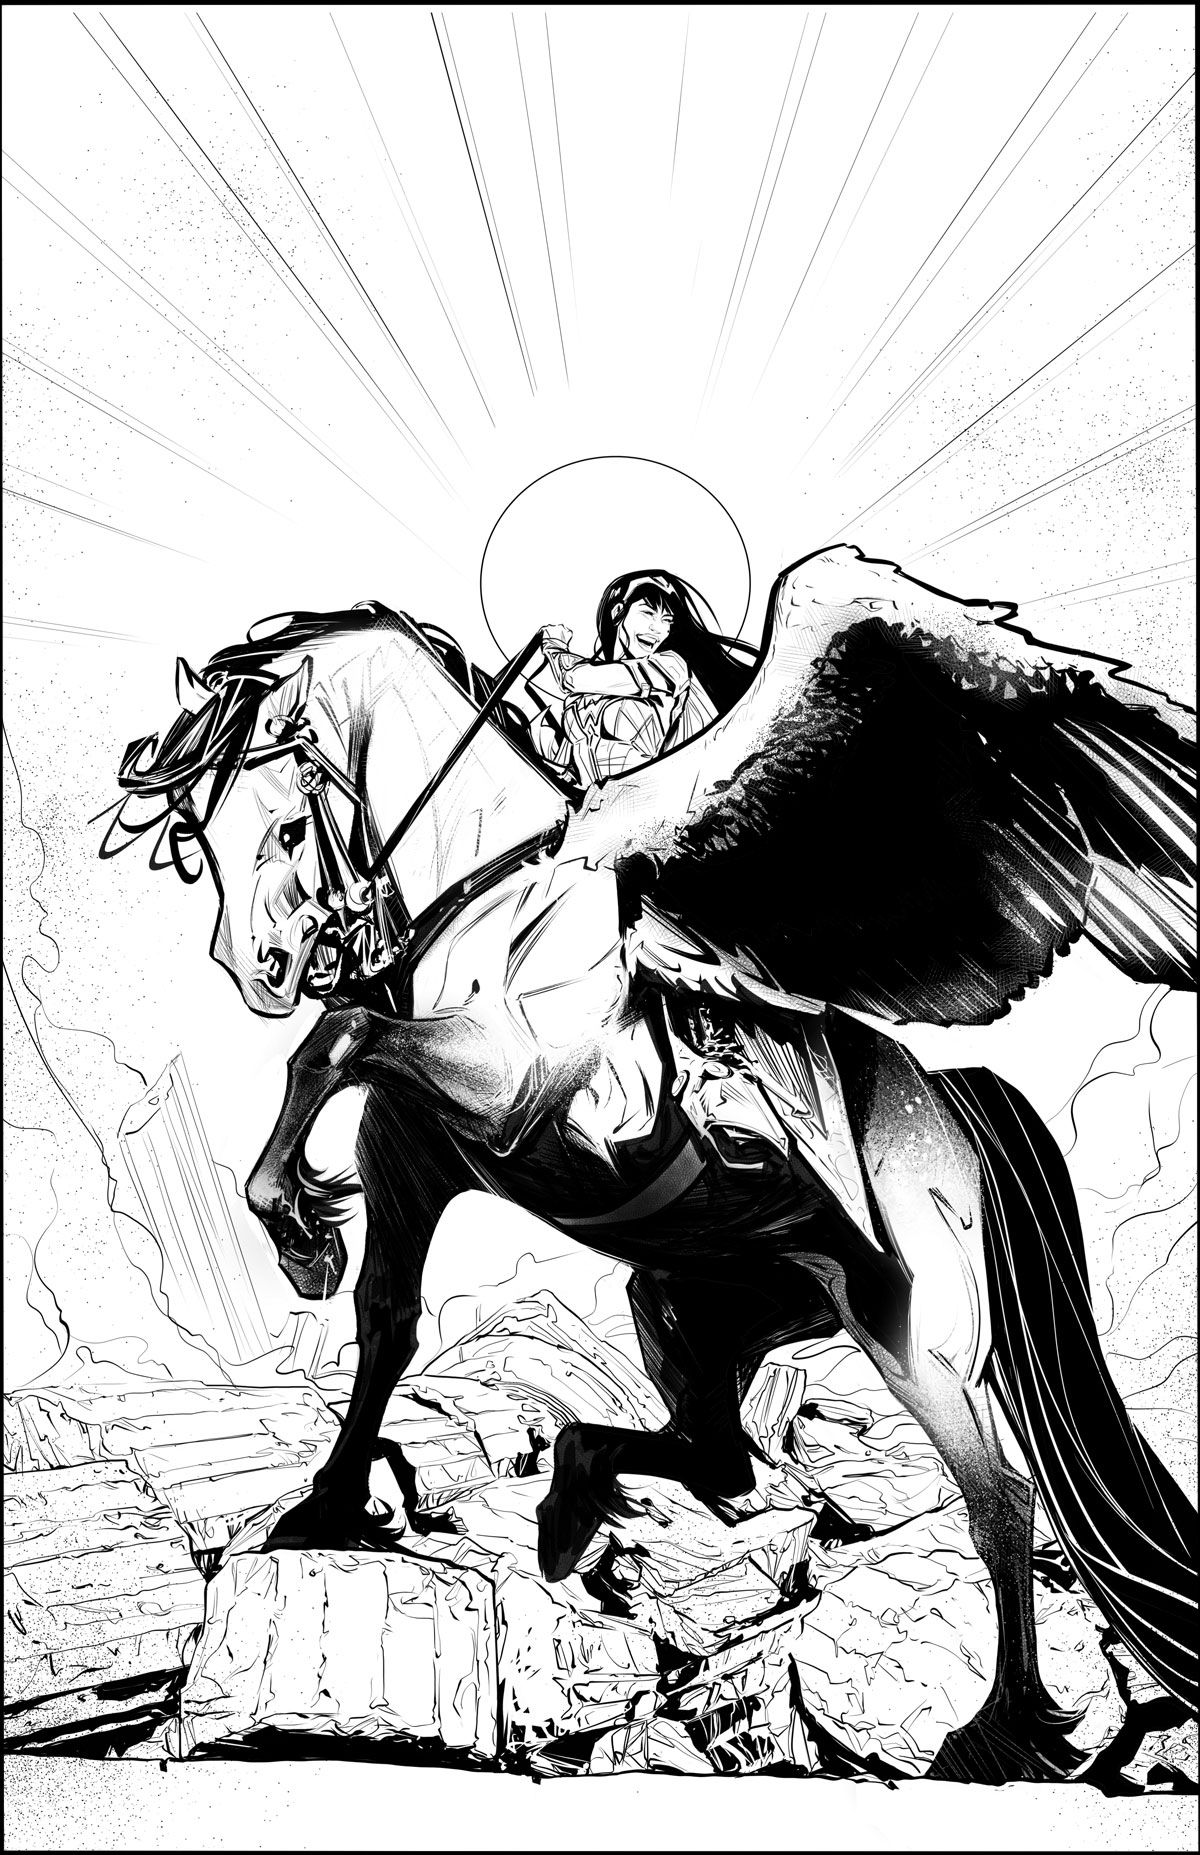 Yara Flor/Wonder Woman triumphantly astride her winged horse, Jerry.